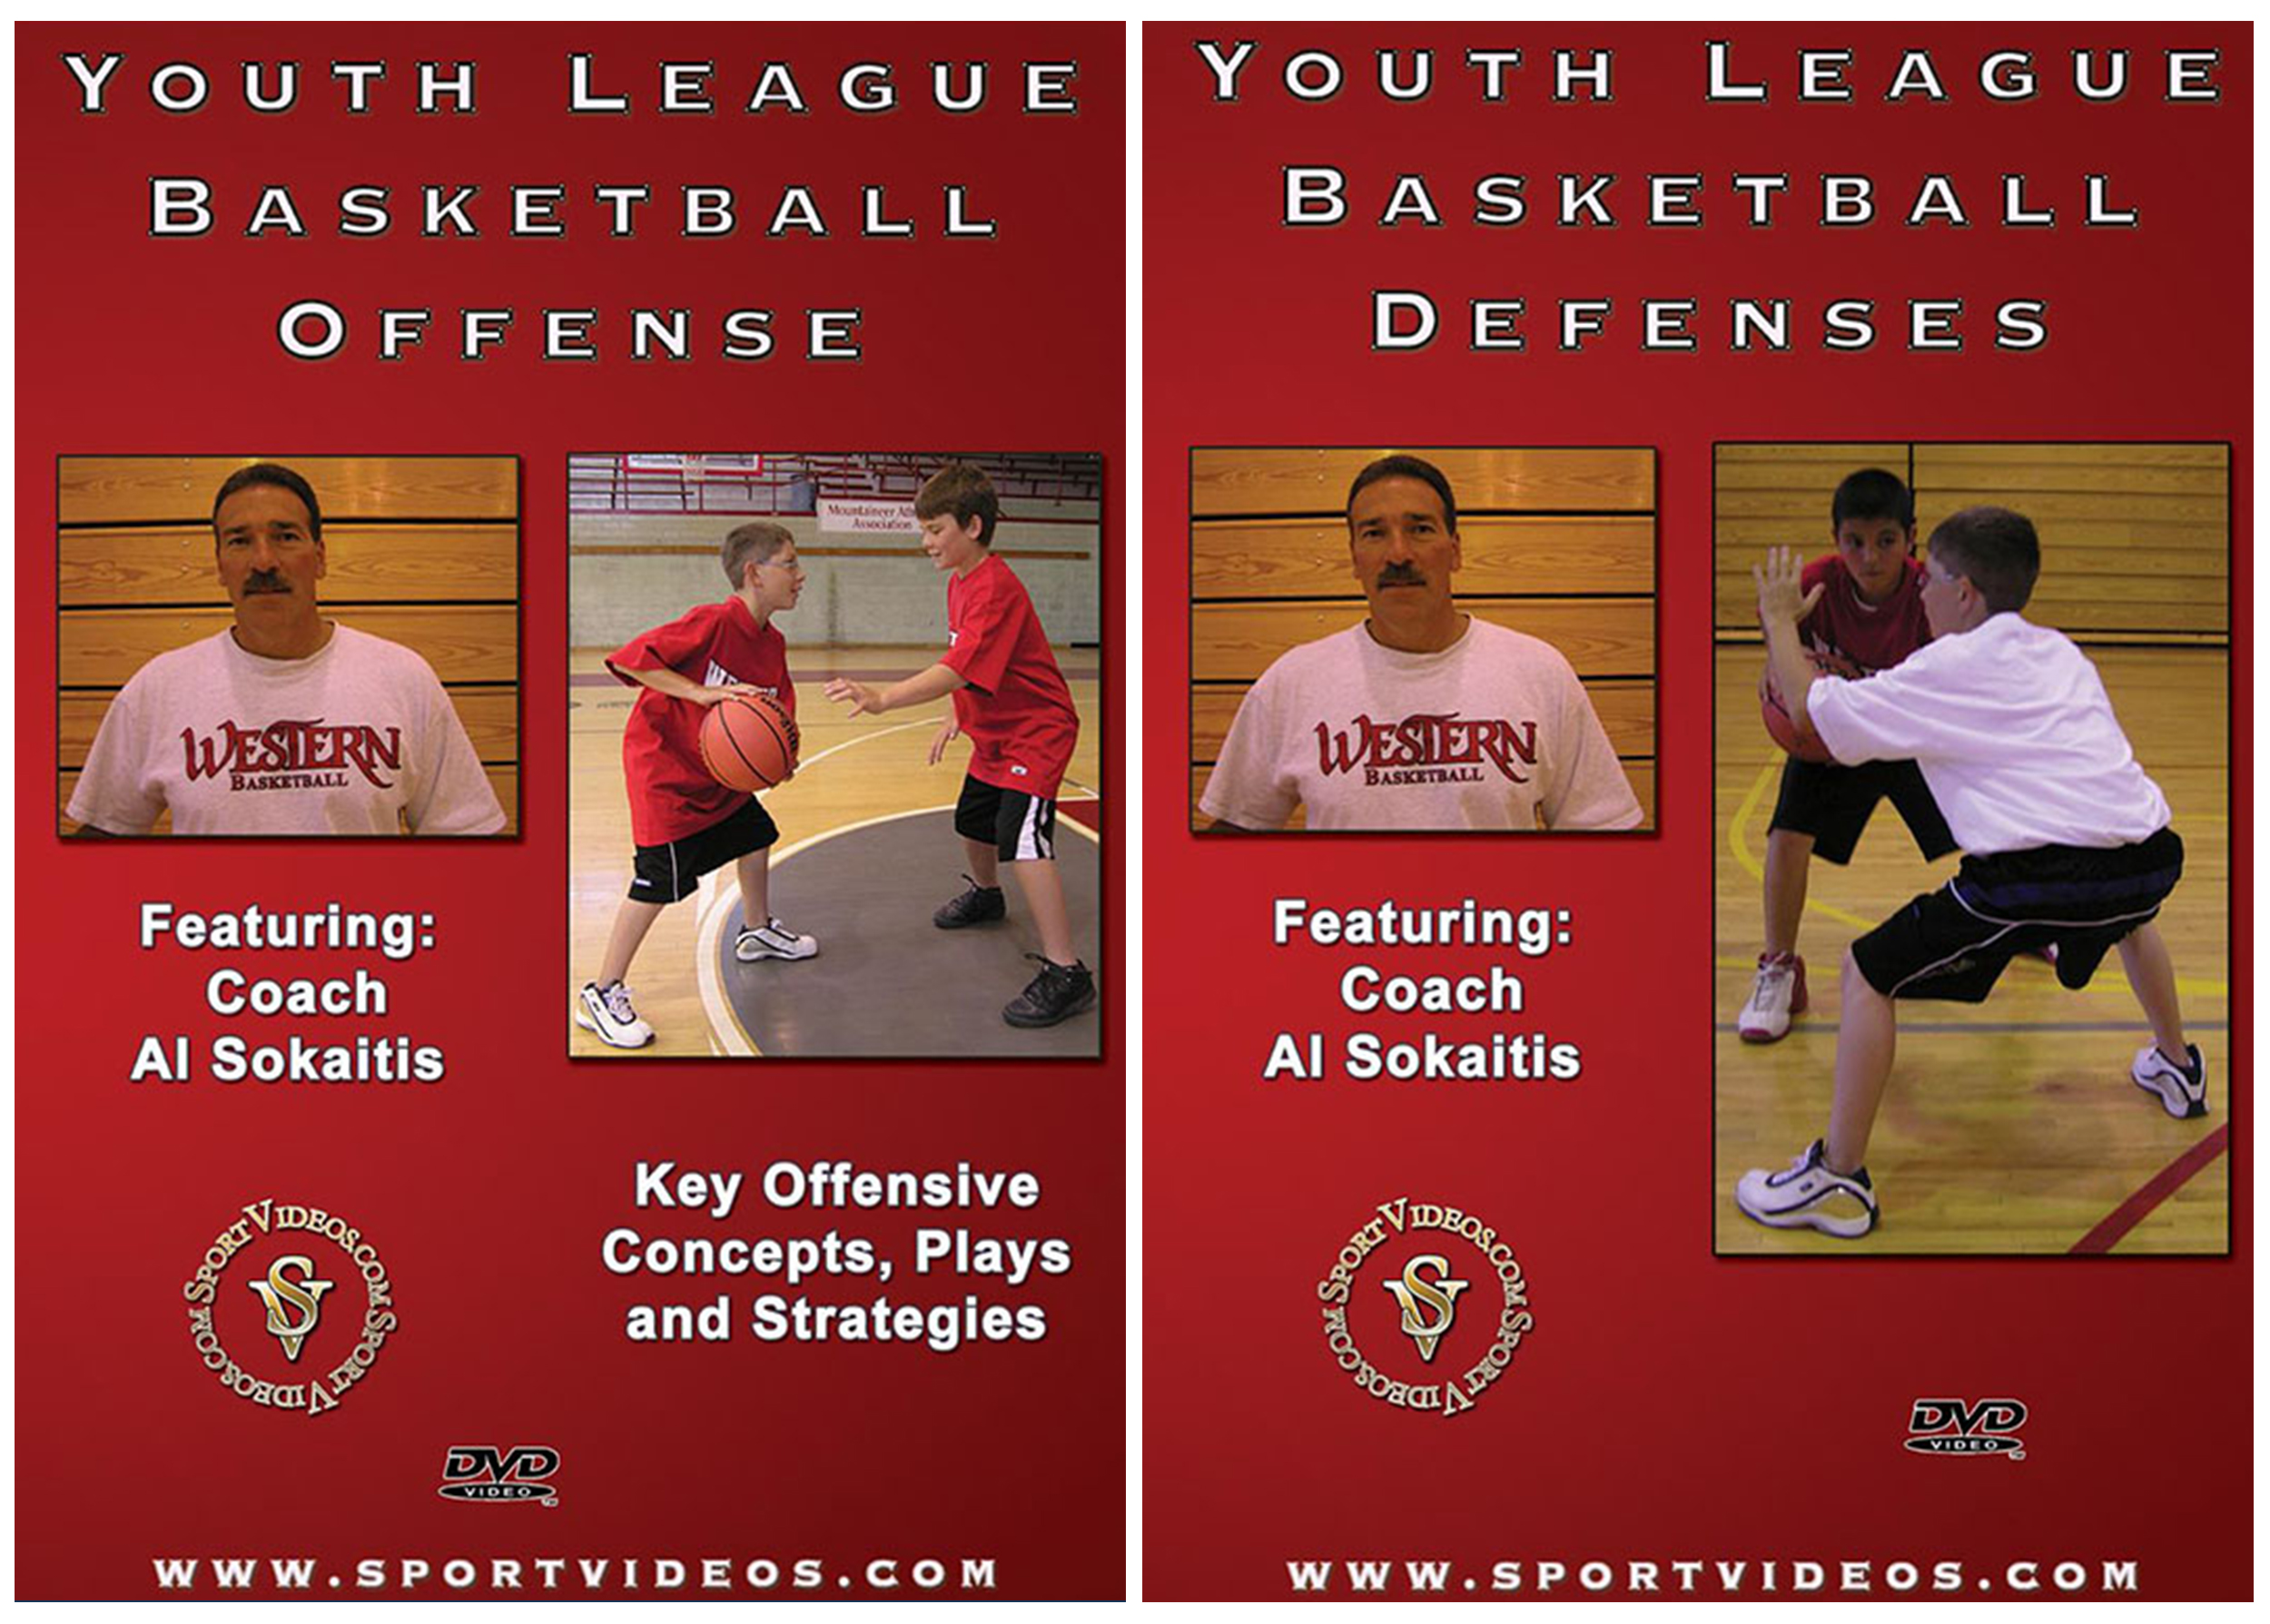 Youth League Basketball 2 DVD Set